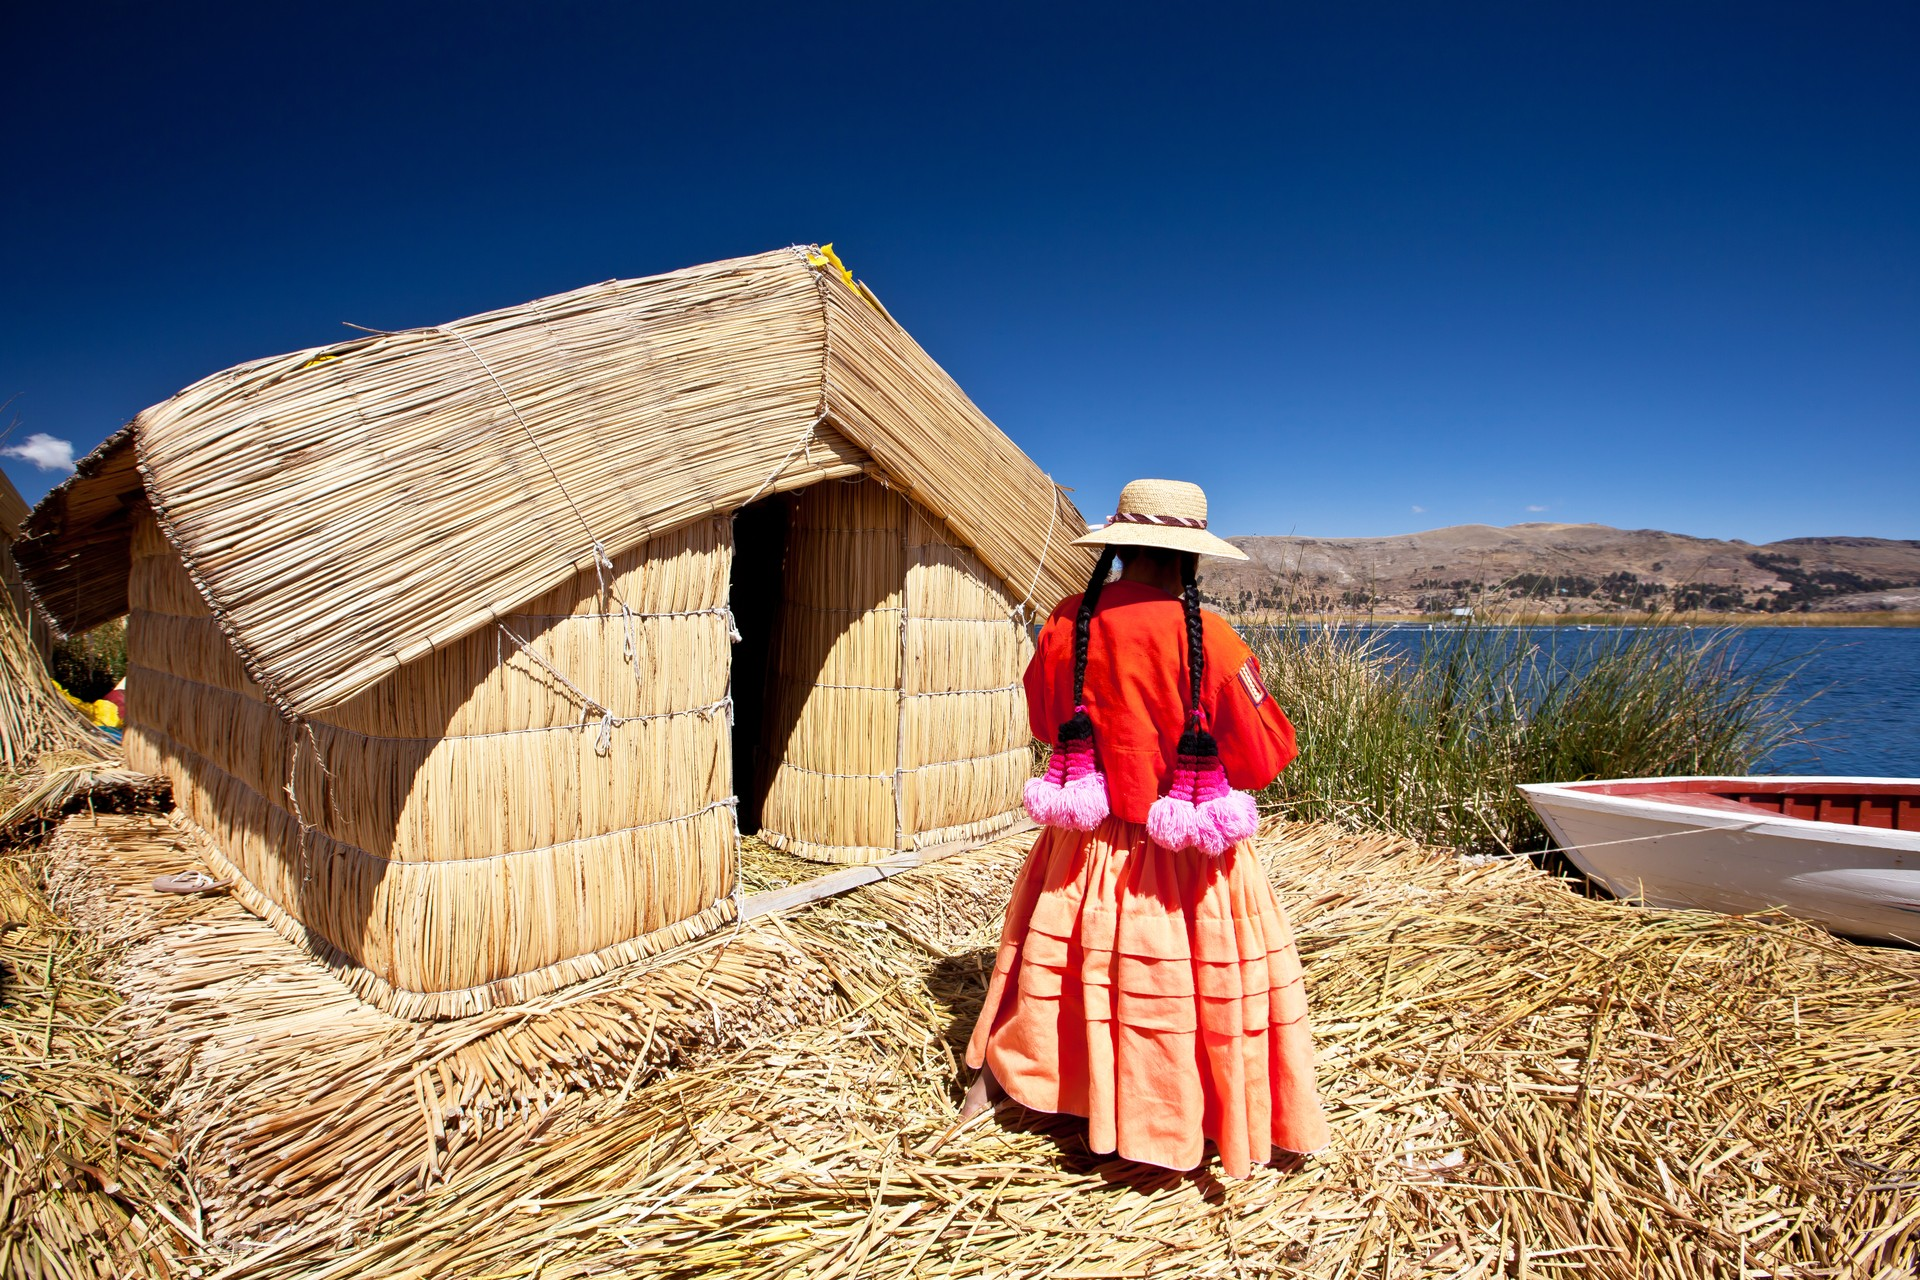 An indigenous woman stands outside of the house she has built from reeds in Puno, Peru